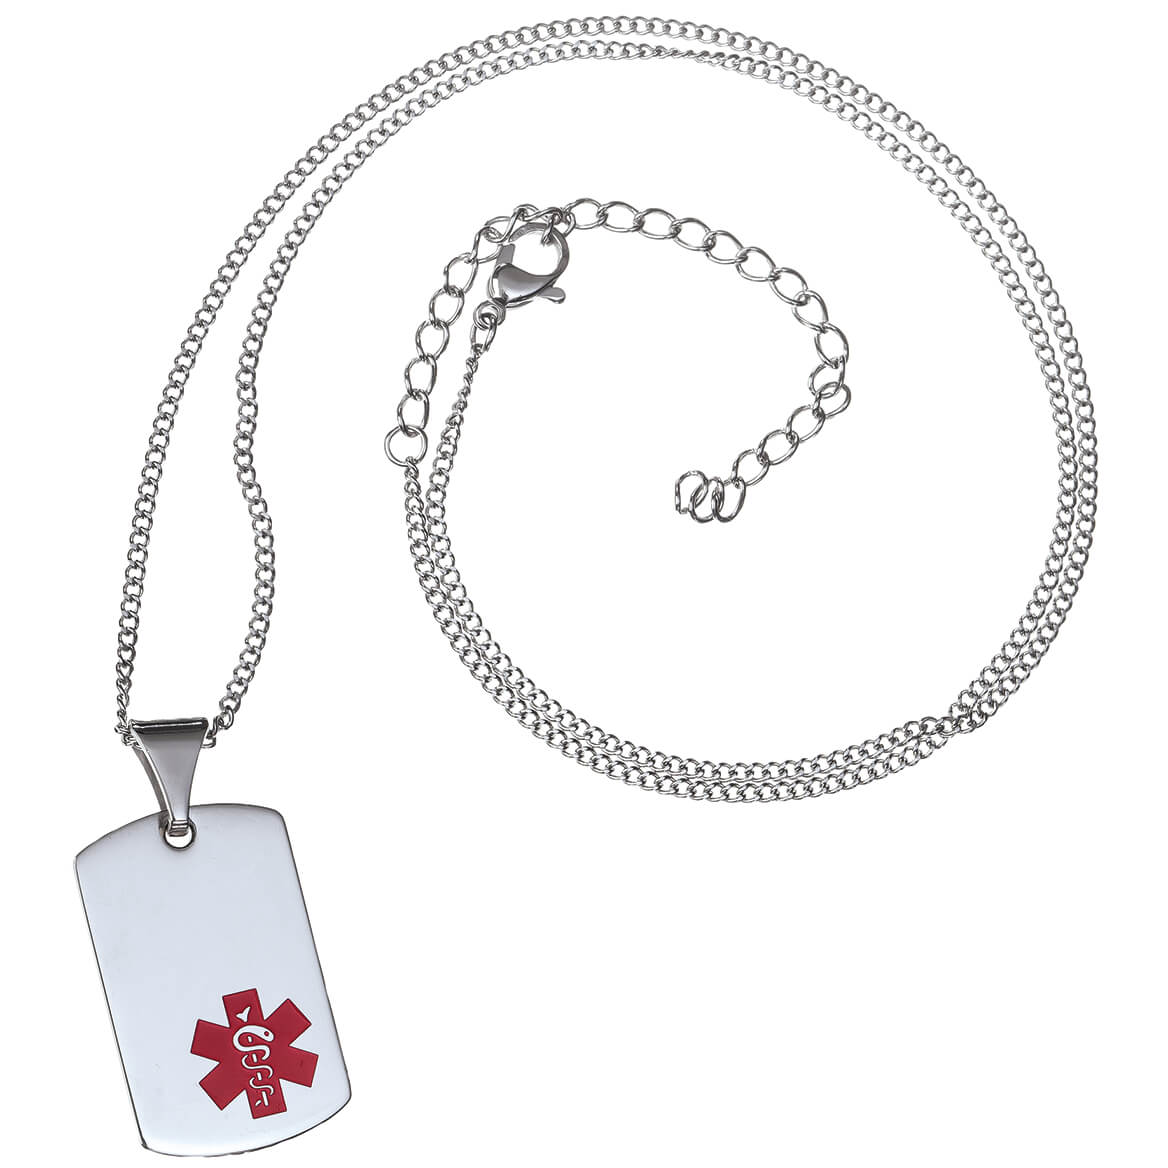 Personalized Medical ID Tag Necklace-369366